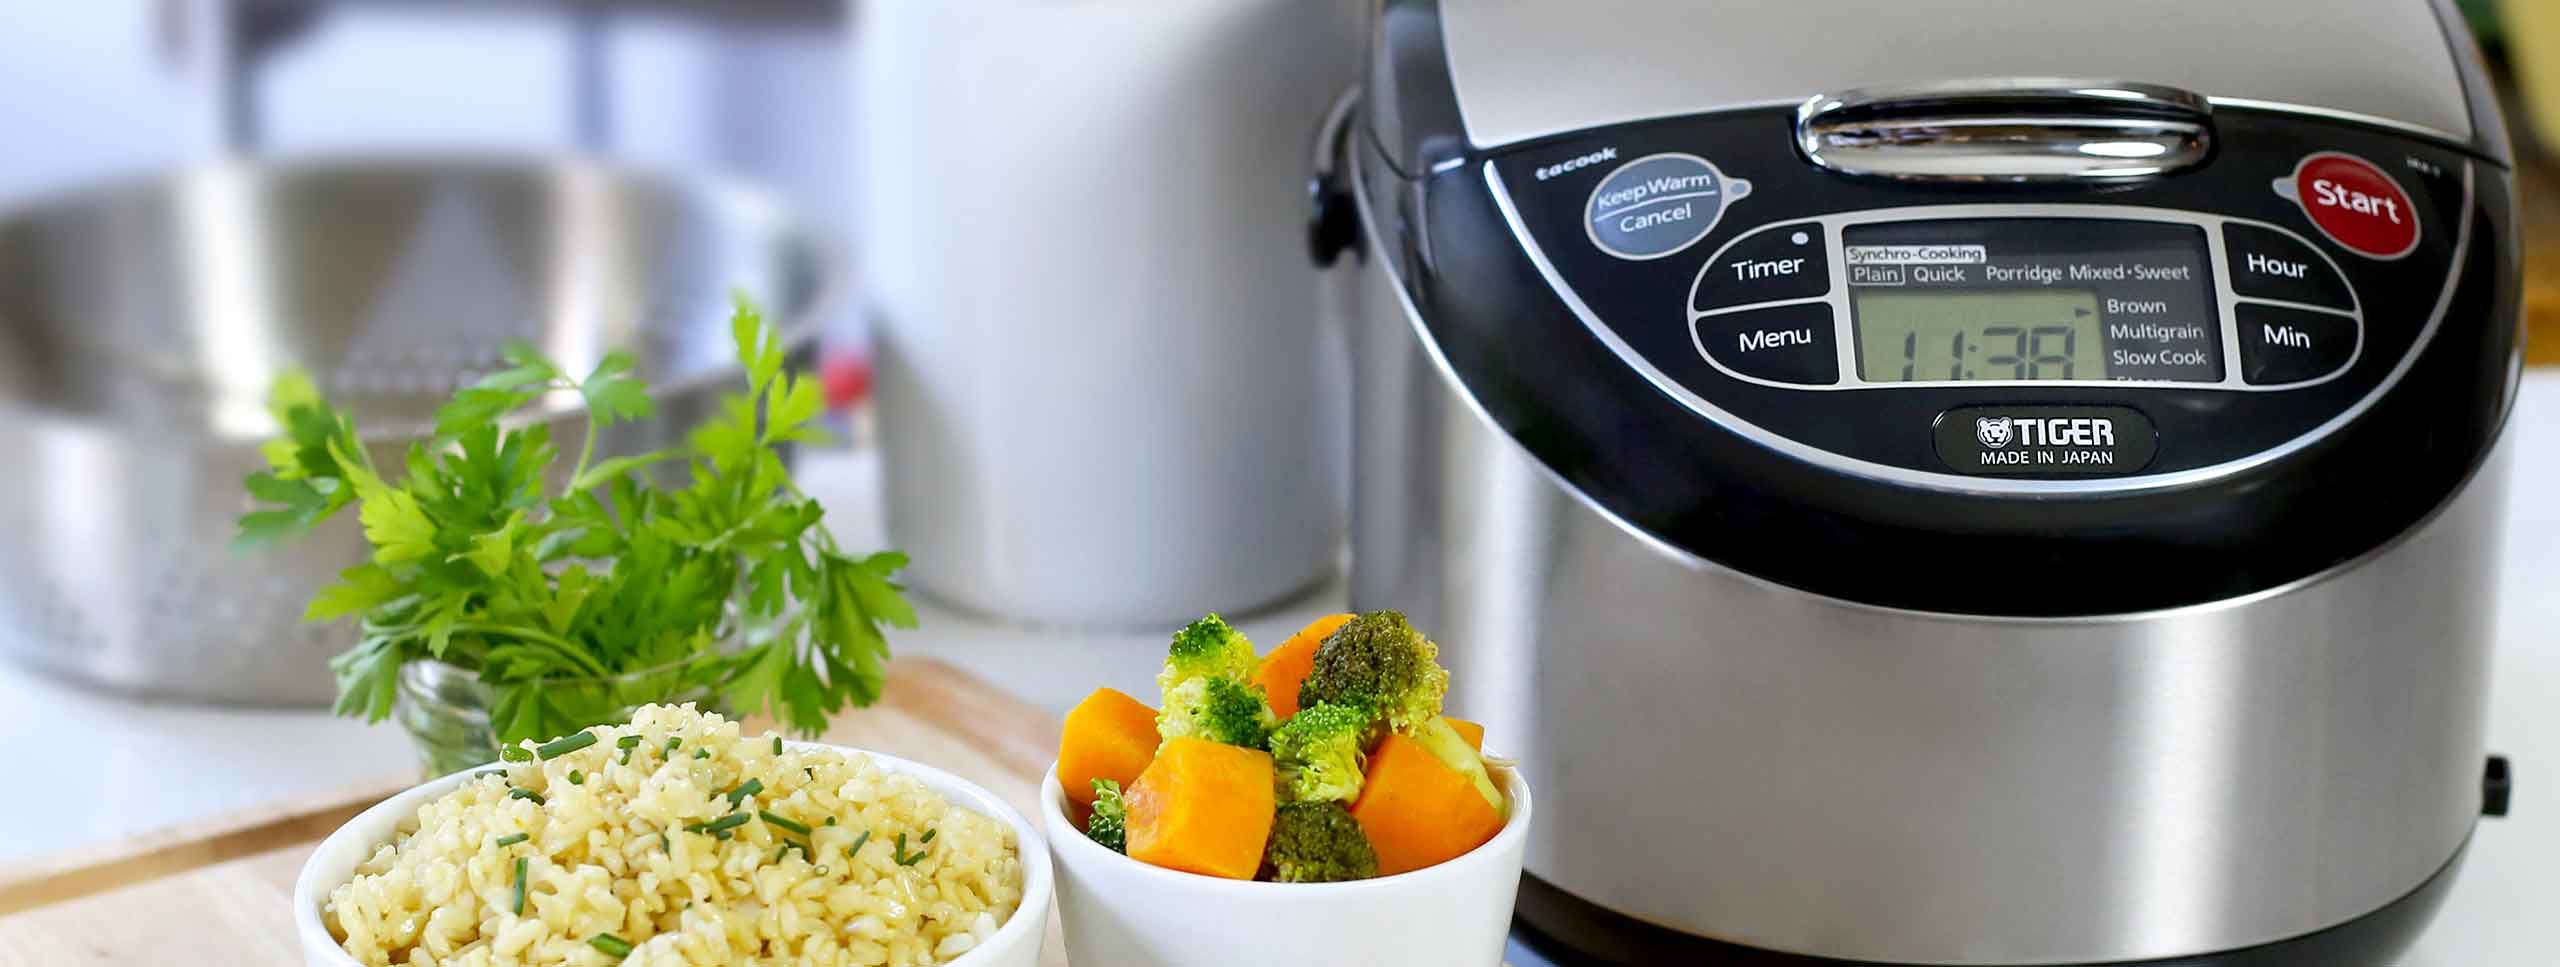 Kitchen Product-Rice cooker